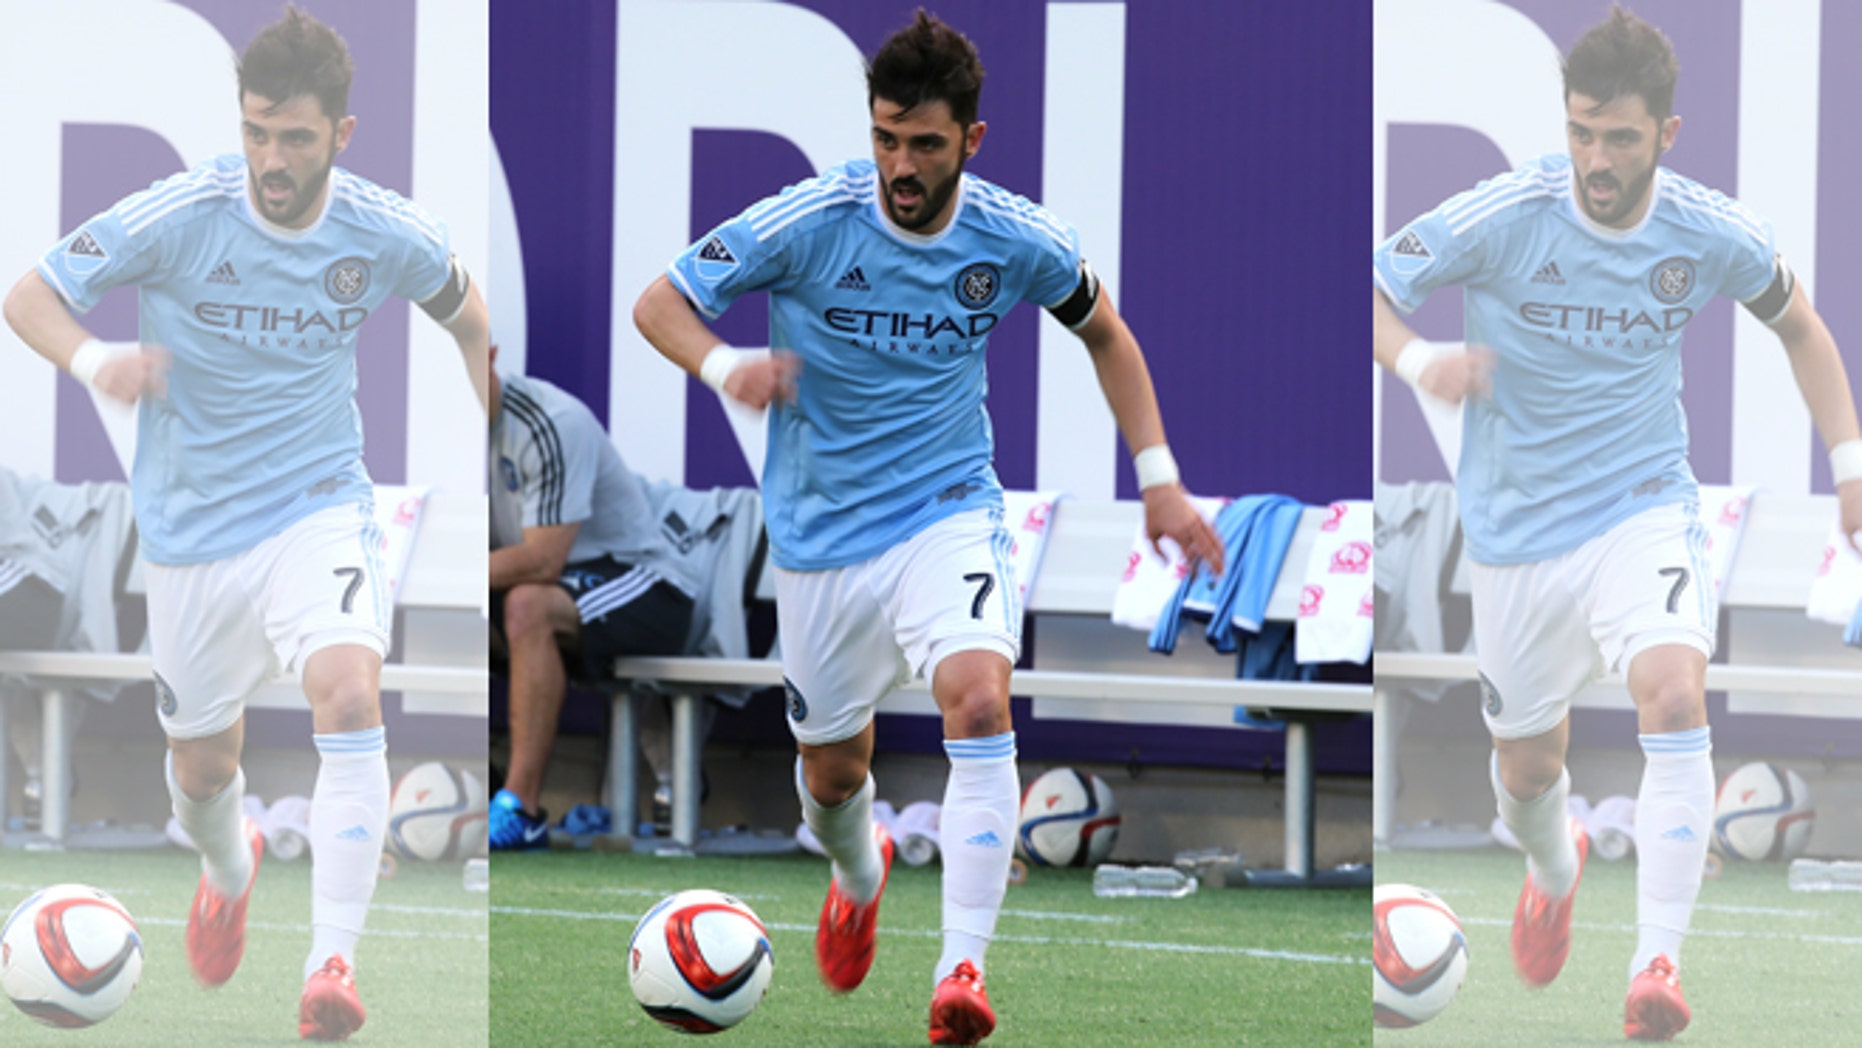 ORLANDO, FL - MARCH 08:  David Villa #7 of New York City FC is seen during an MLS soccer match between the New York City FC and the Orlando City SC at the Orlando Citrus Bowl on March 8, 2015 in Orlando, Florida. This was the first game for both teams and the final score was 1-1.(Photo by Alex Menendez/Getty Images)